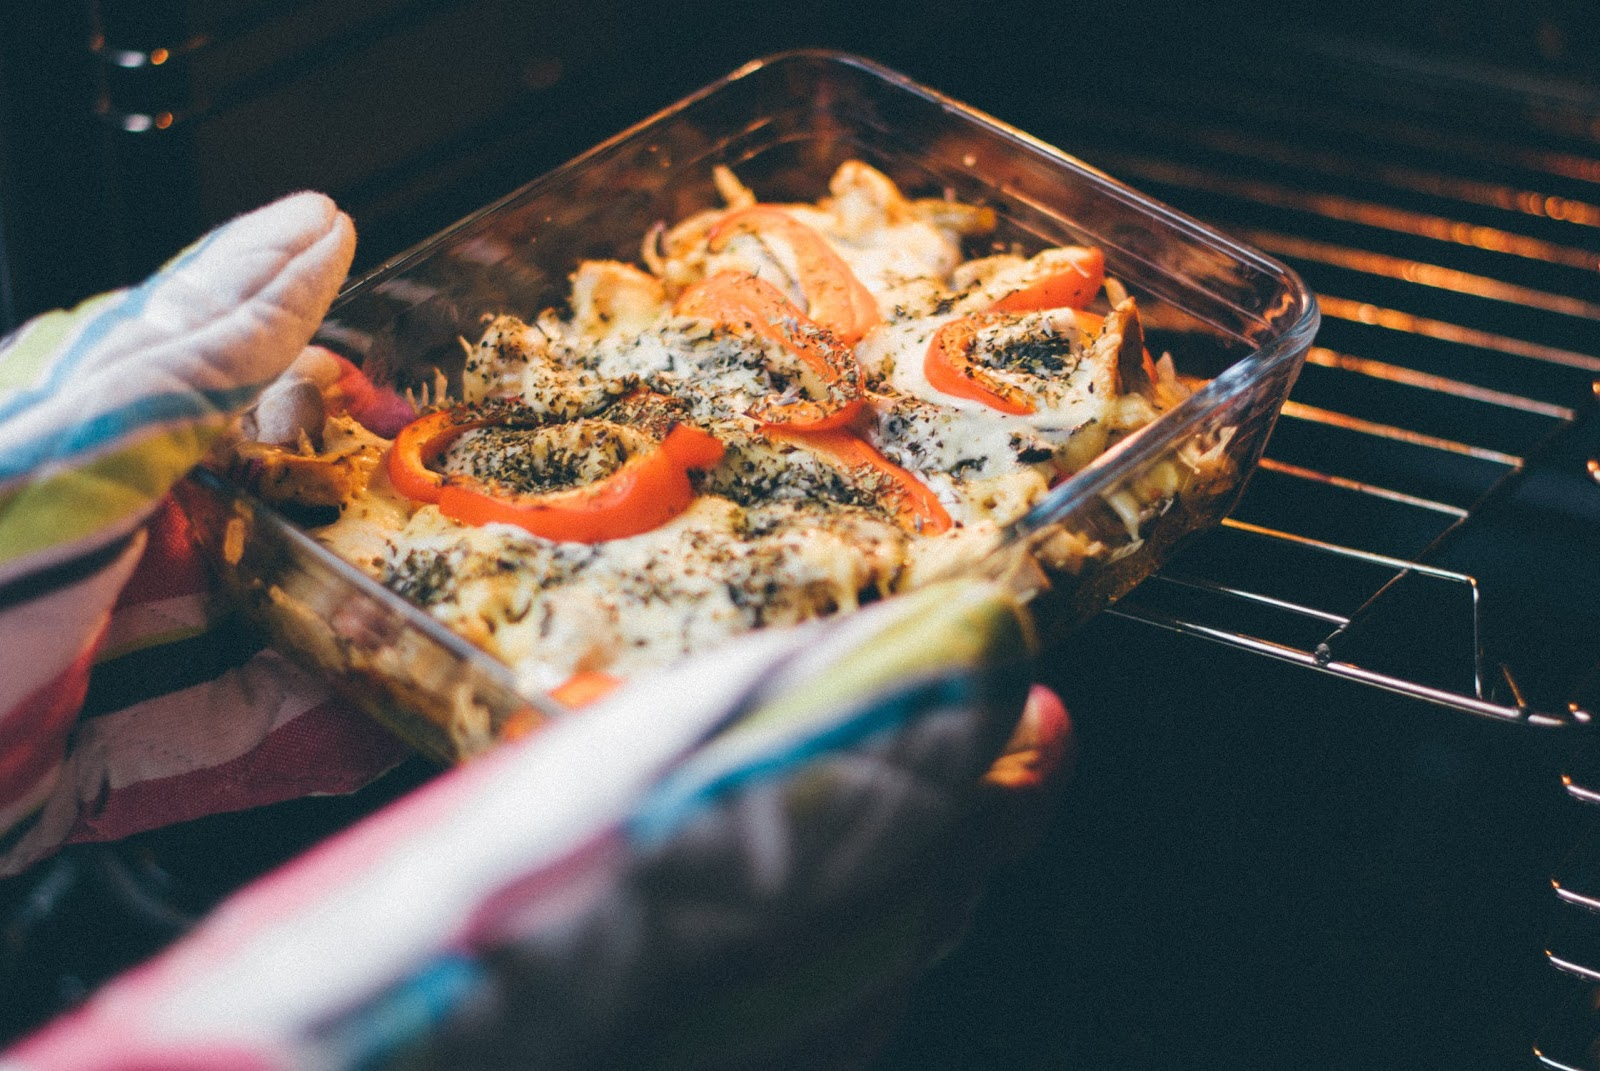 Steam convection oven: a casserole coming out of the oven